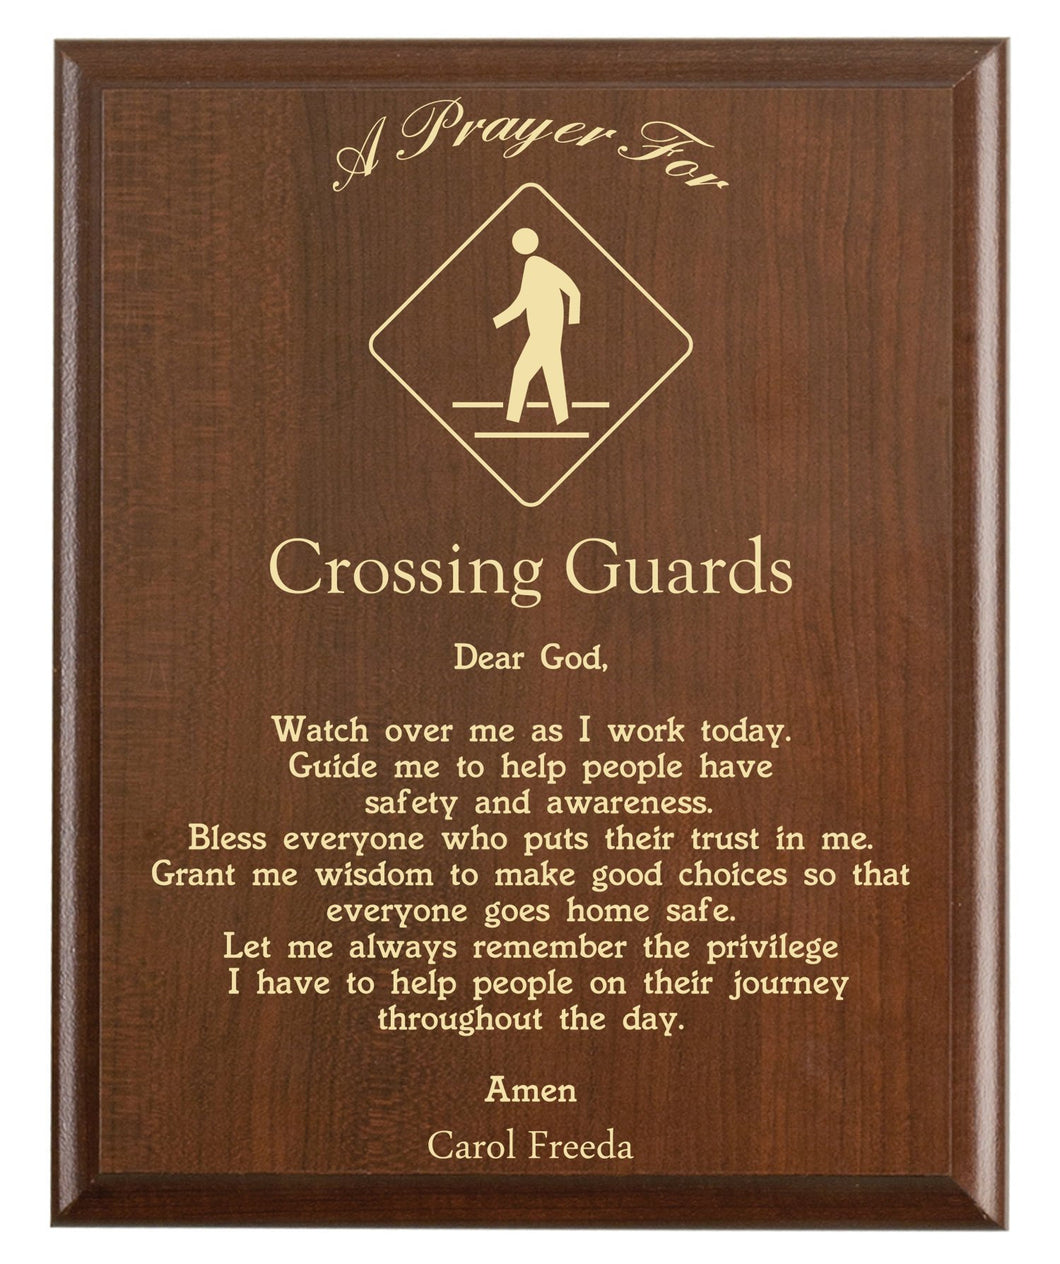 Christian prayer for a crossing guard with industry logo and free personalization. Cherry finish with laser engraved text.